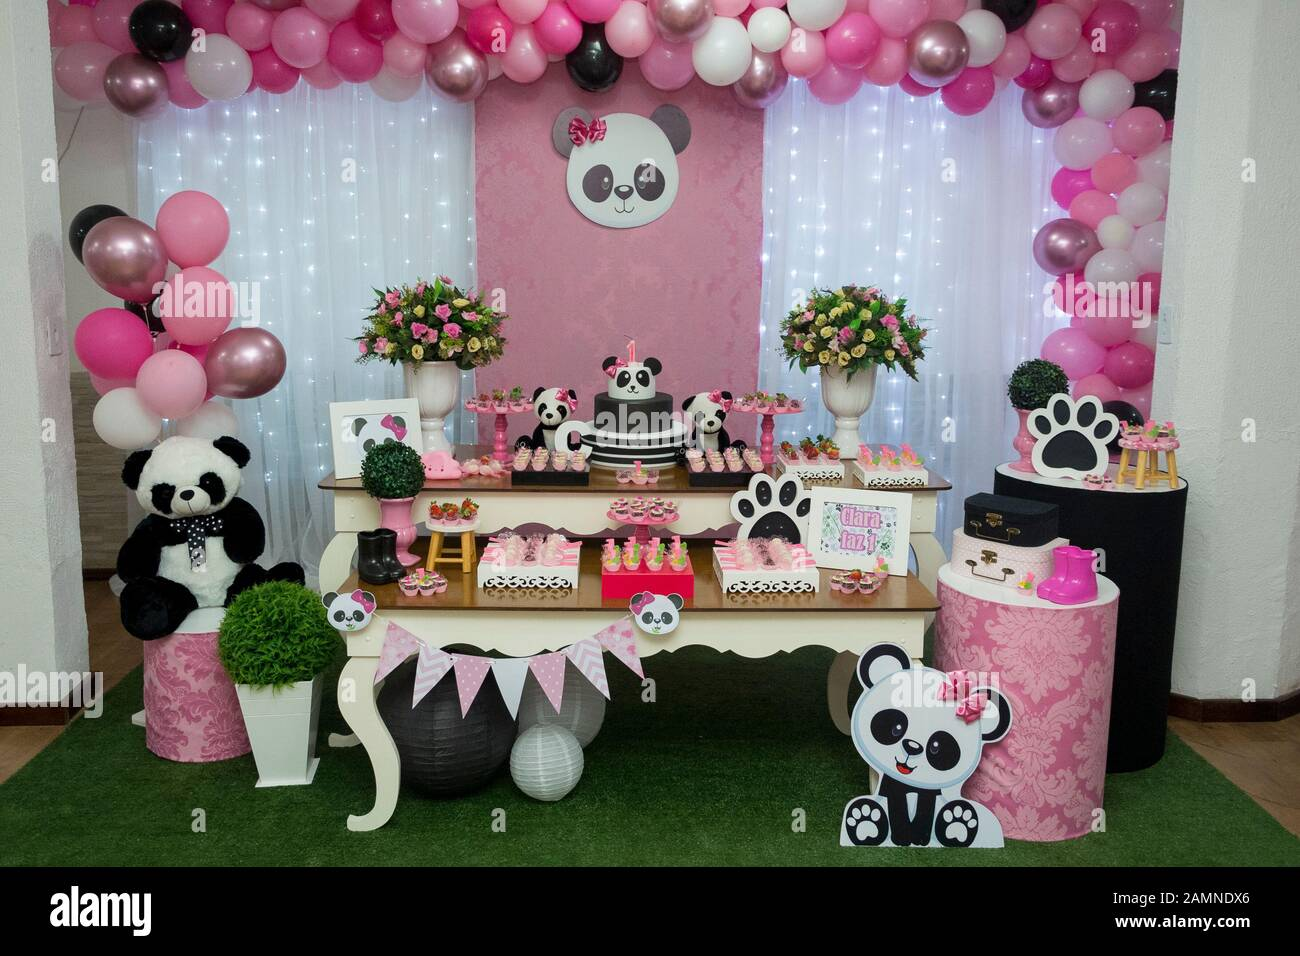 Miraculous Table Of Sweets And Birthday Cake Girl Party Decorated With Panda Funny Birthday Cards Online Elaedamsfinfo